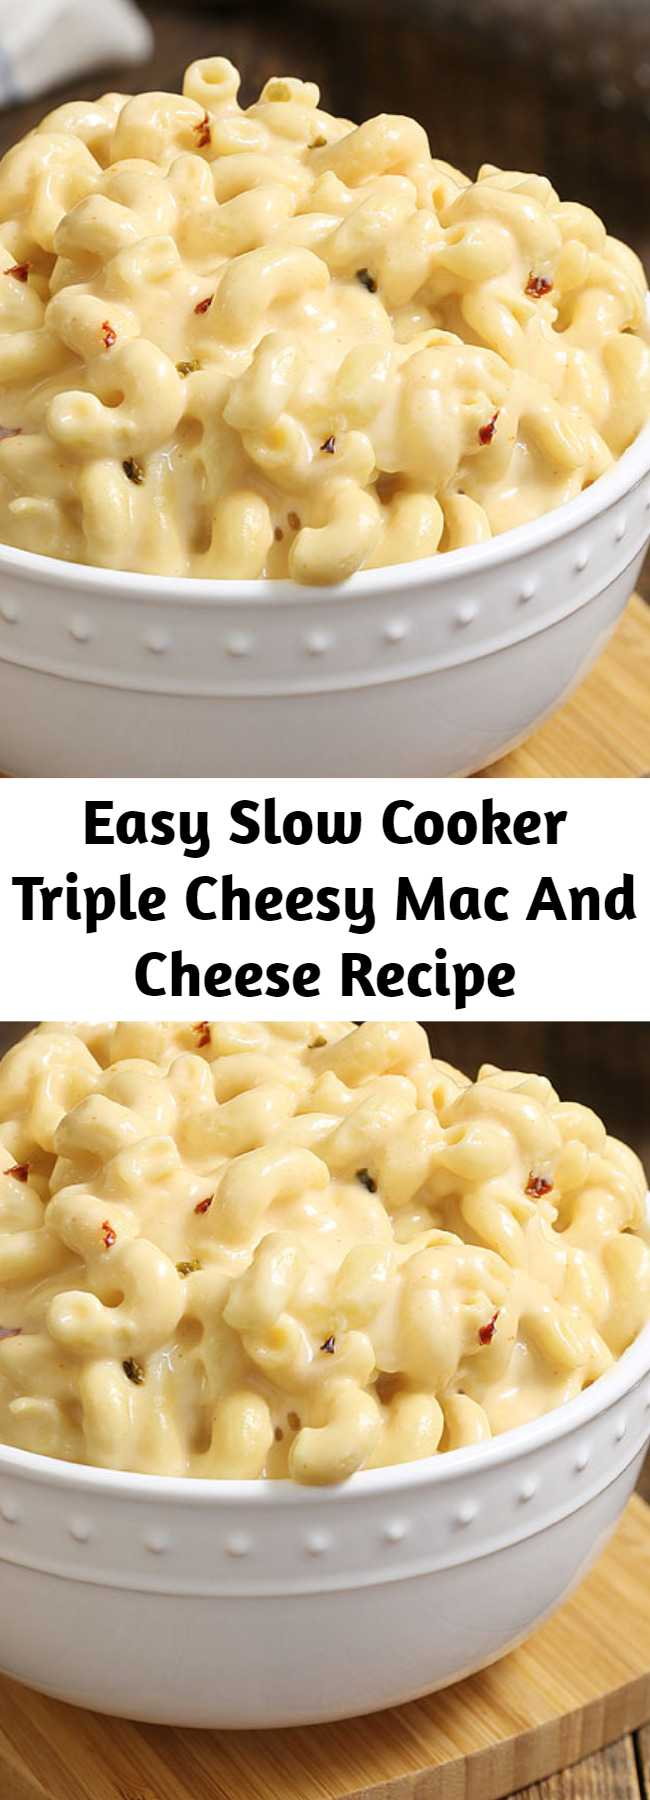 Easy Slow Cooker Triple Cheesy Mac And Cheese Recipe - A simple recipe that you can toss together in just 5 minutes. It's pure comfort in a bowl, with perfectly tender corkscrew pasta with twists and ridges that capture the luscious pepper Jack and cheddar cheese sauce. It has just enough heat to wake up your taste buds. Check out the video above the recipe to see how easy this Best Ever Mac and Cheese is to make! #slowcooker #macandcheese